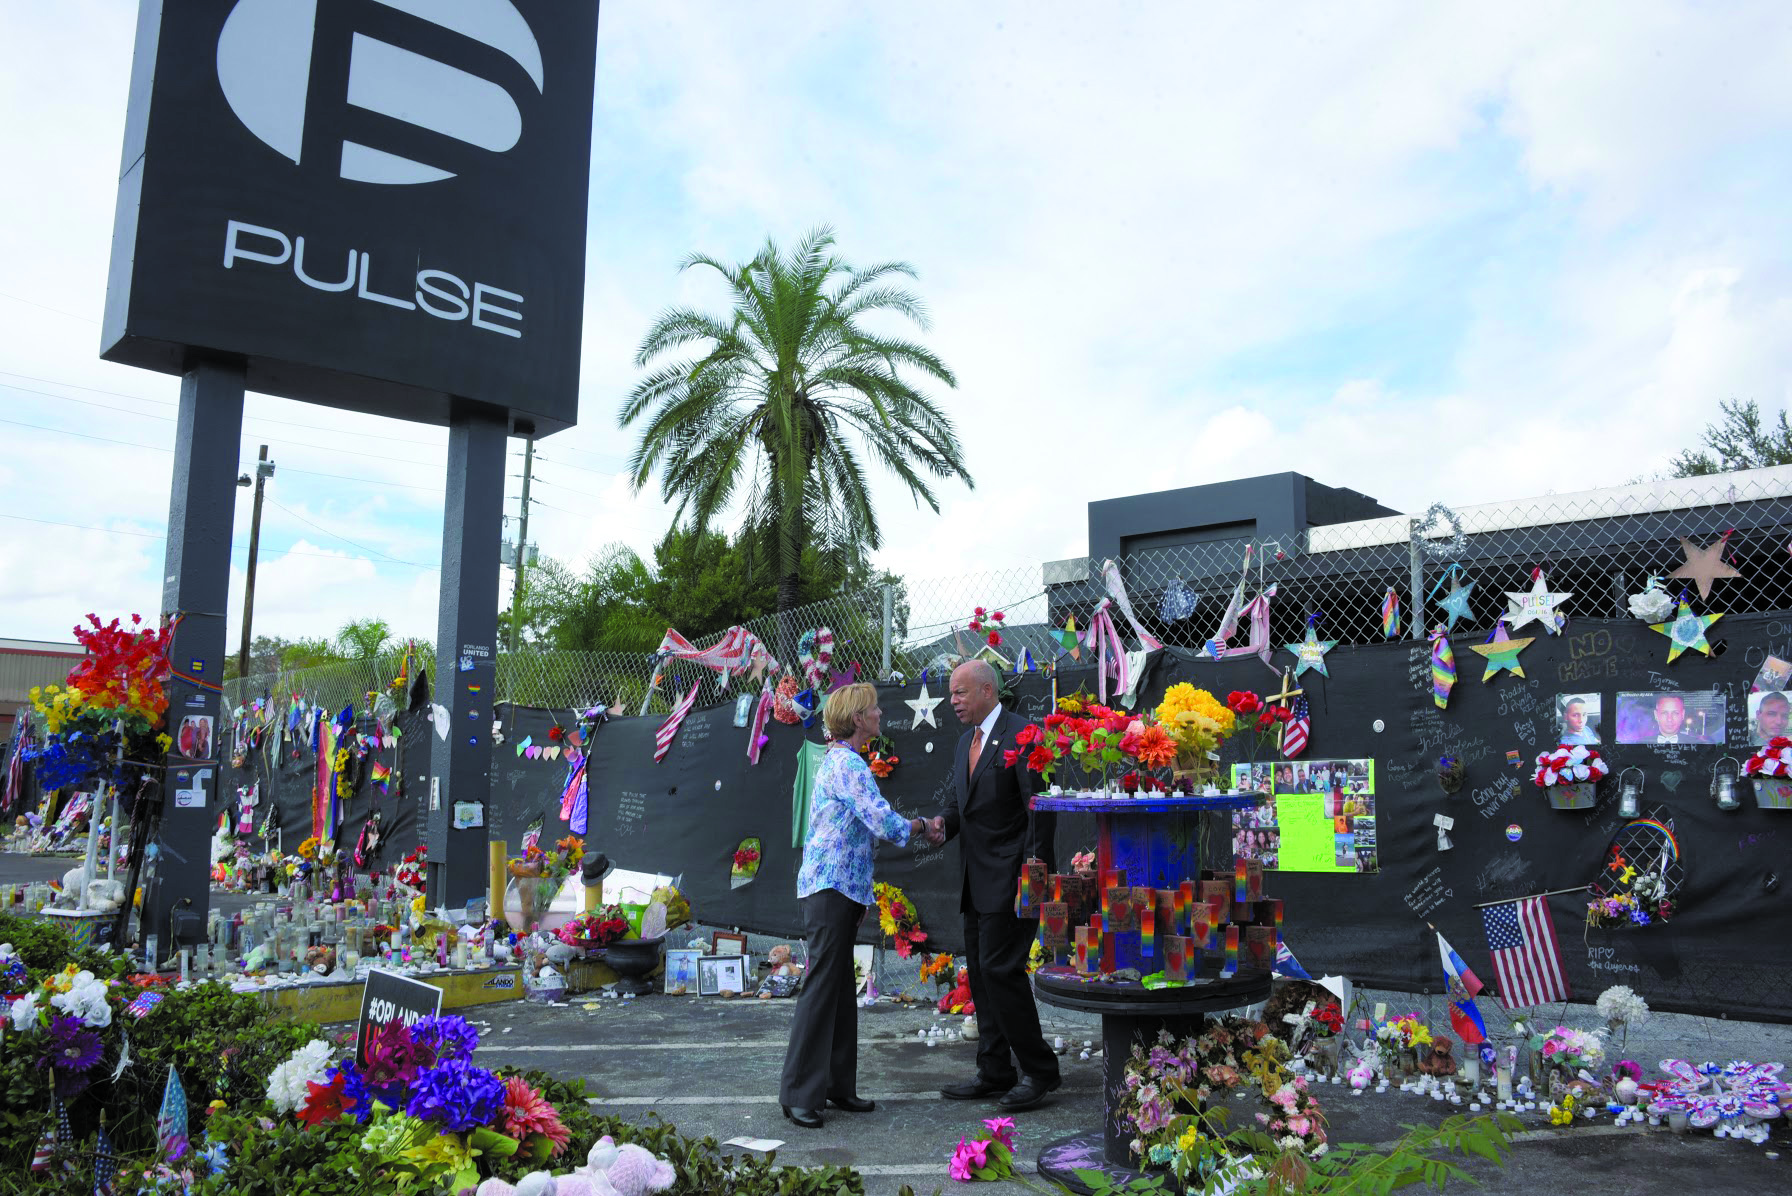 Pulse-nightclub-reopen-new-location-orlando-barbara-poma